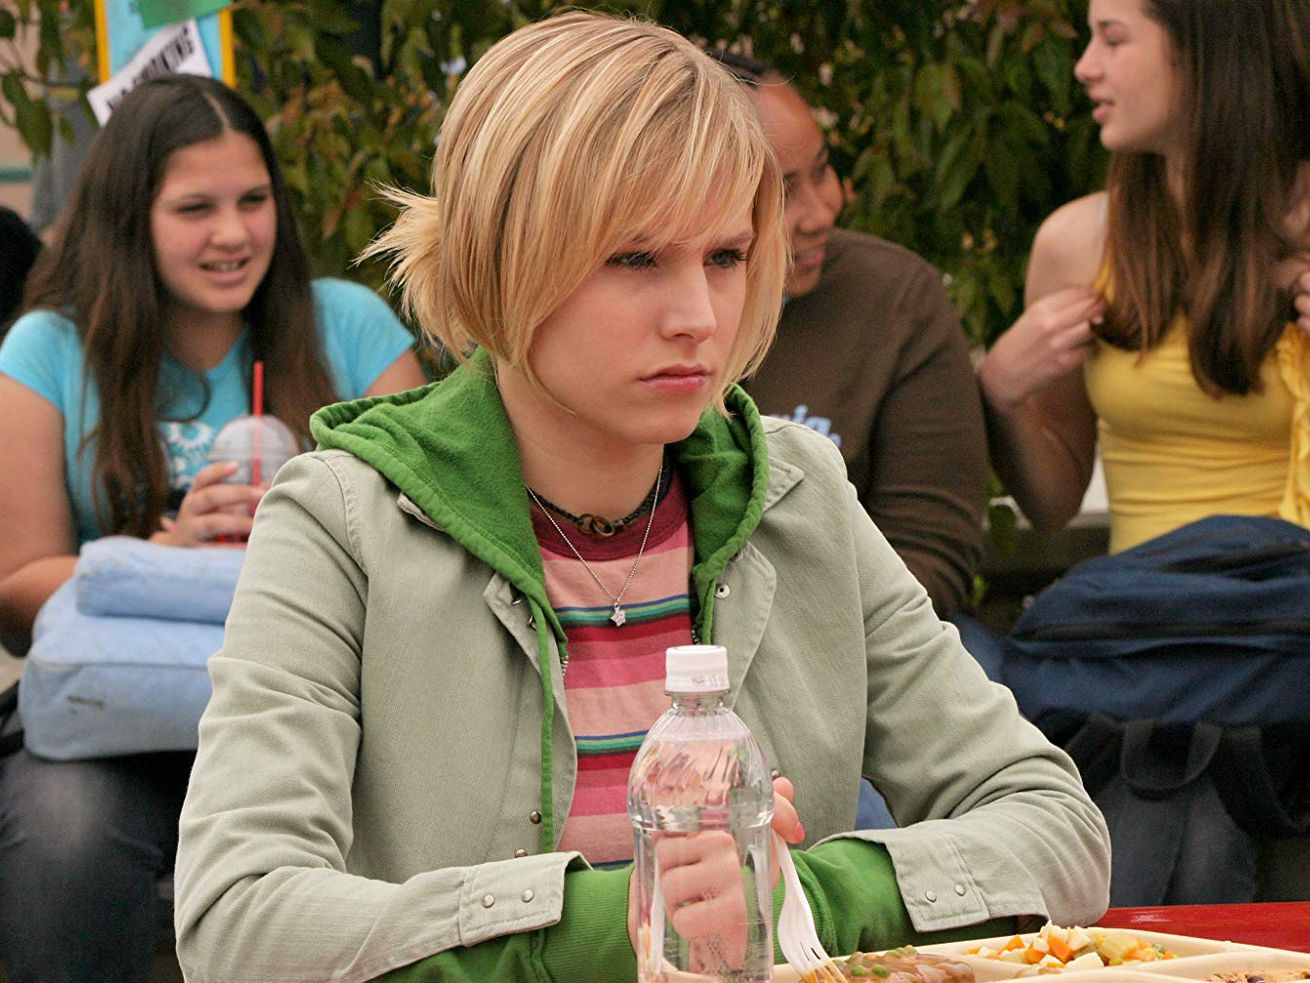 Kristen Bell as Veronica Mars in 2004